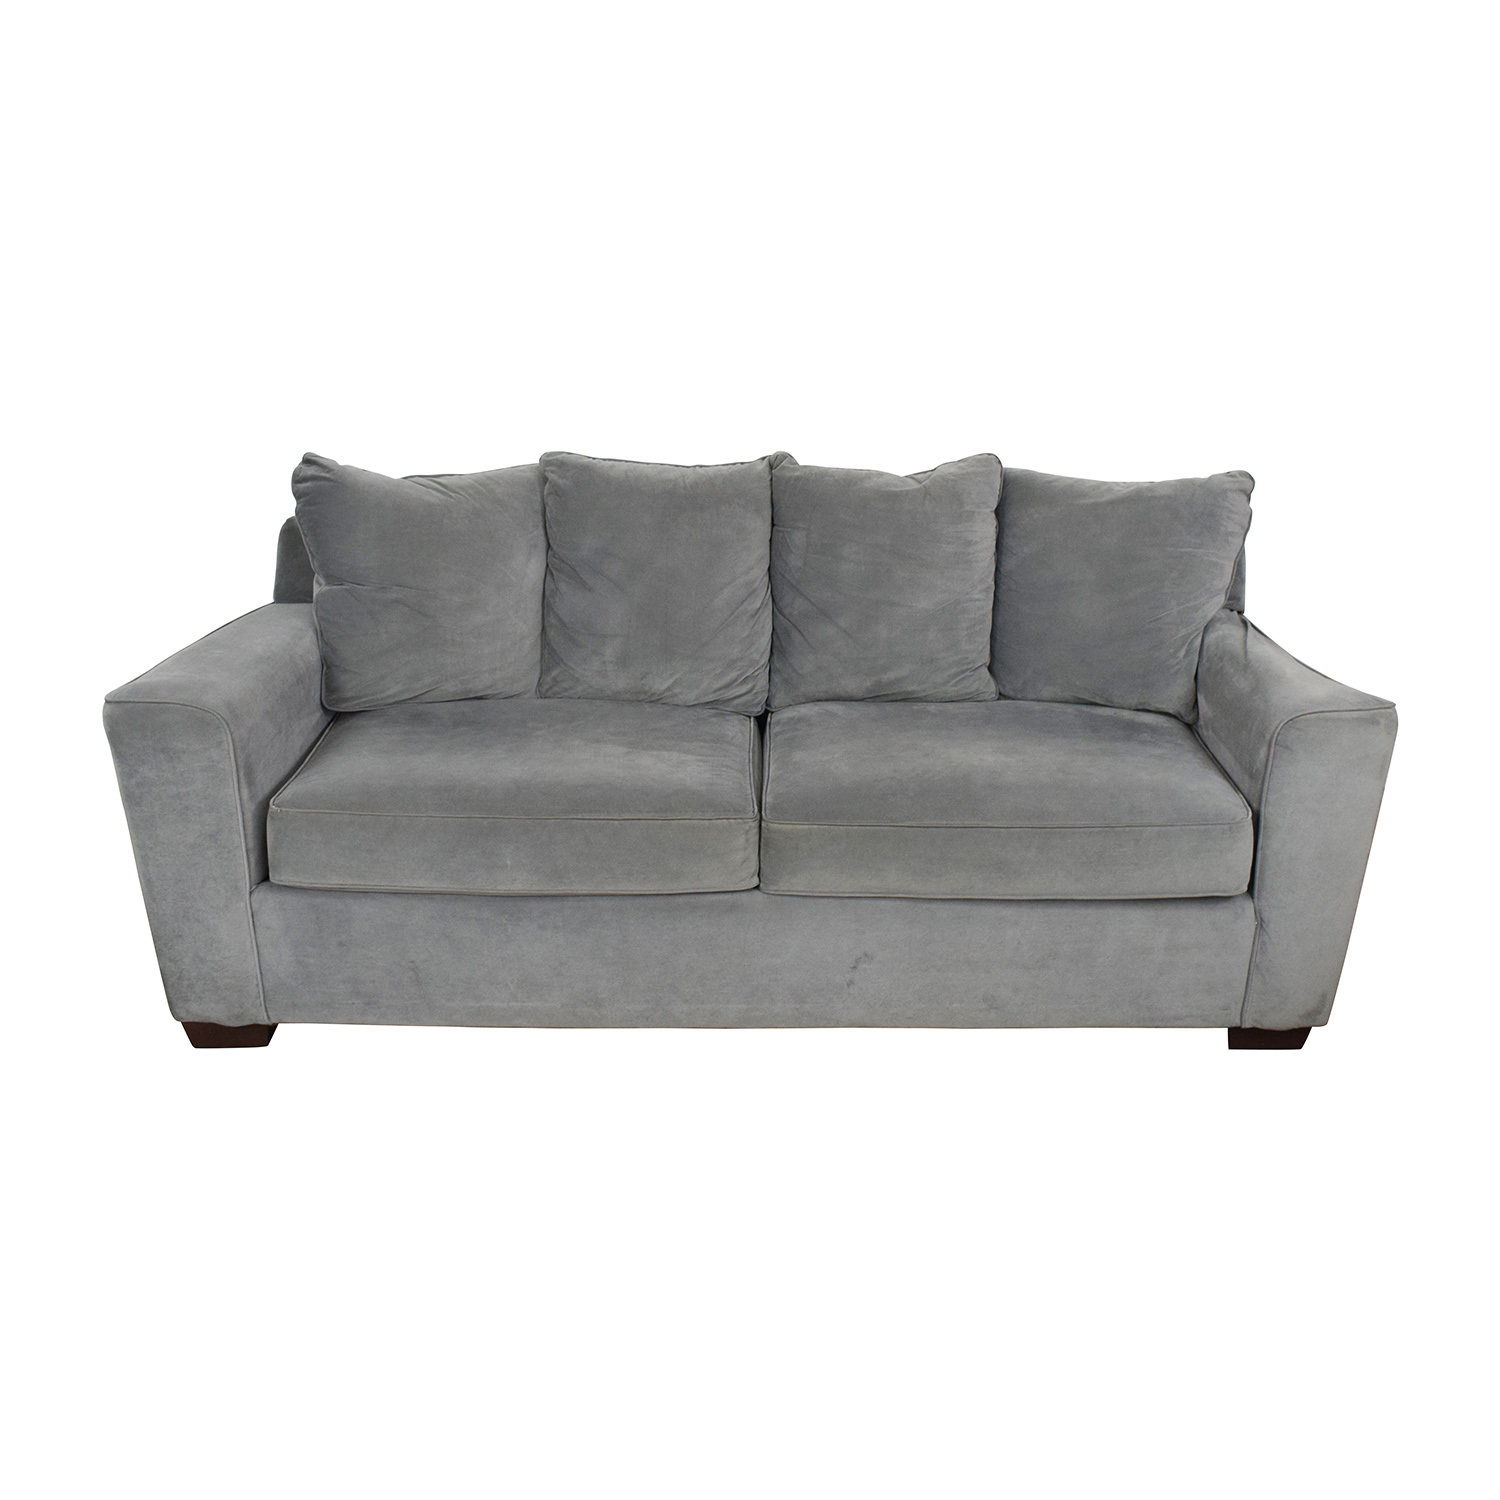 jennifer convertible sofas on sale easy stretch sofa covers uk shop 2